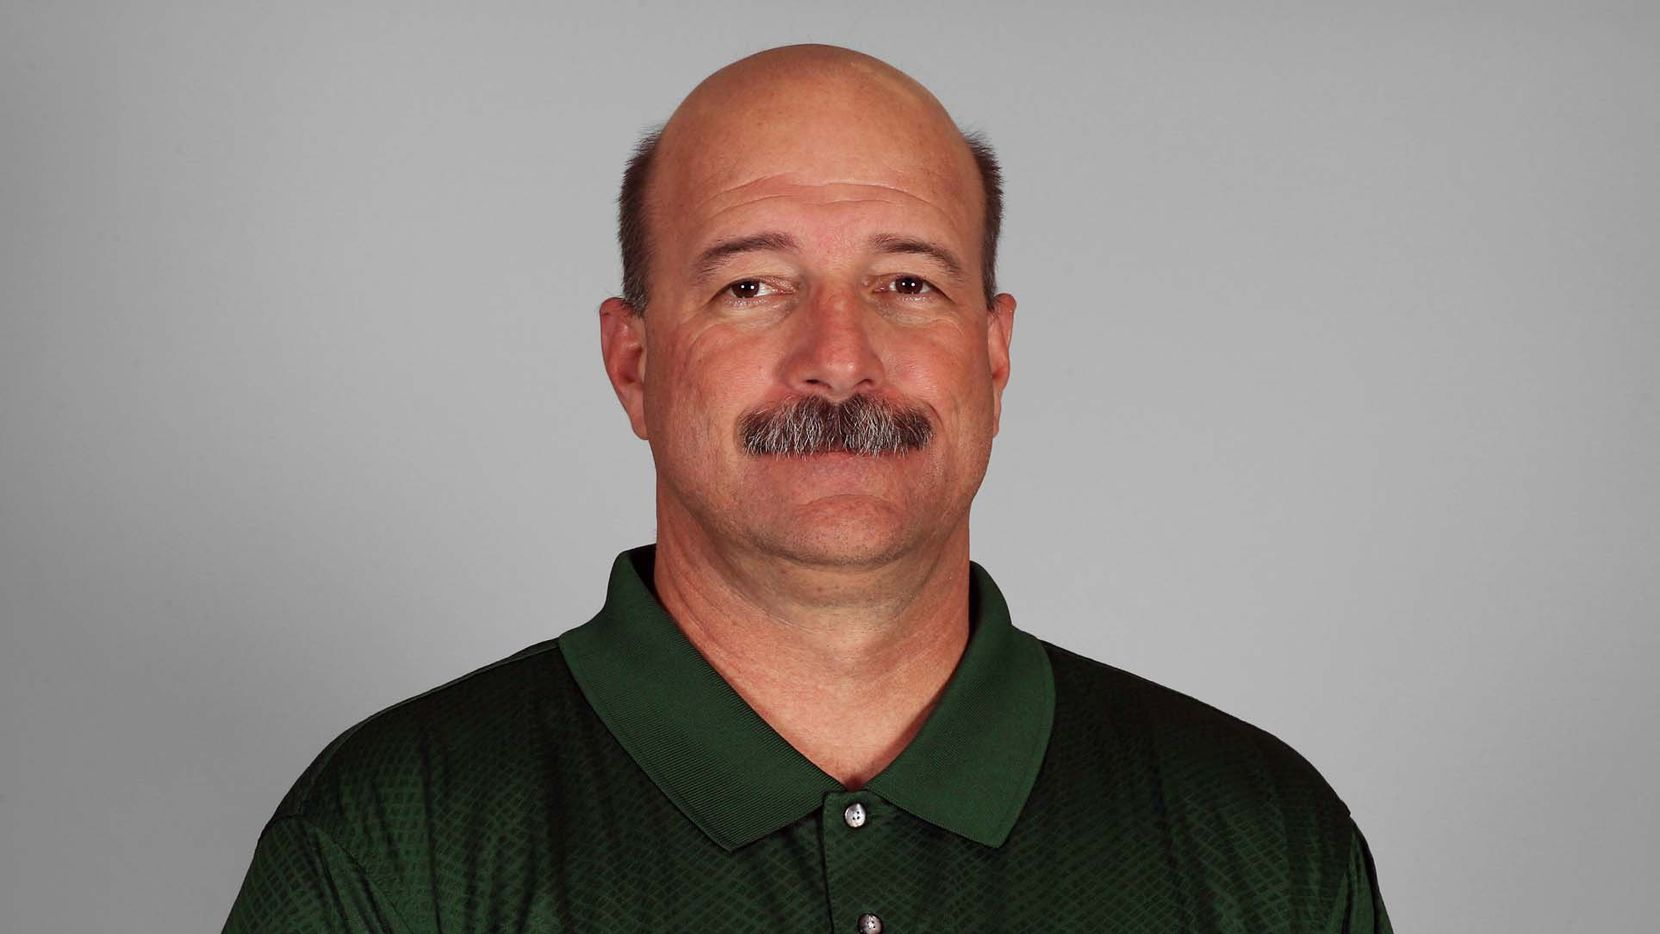 Noel Mazzone, pictured in 2008 when he was on the Jets' staff.